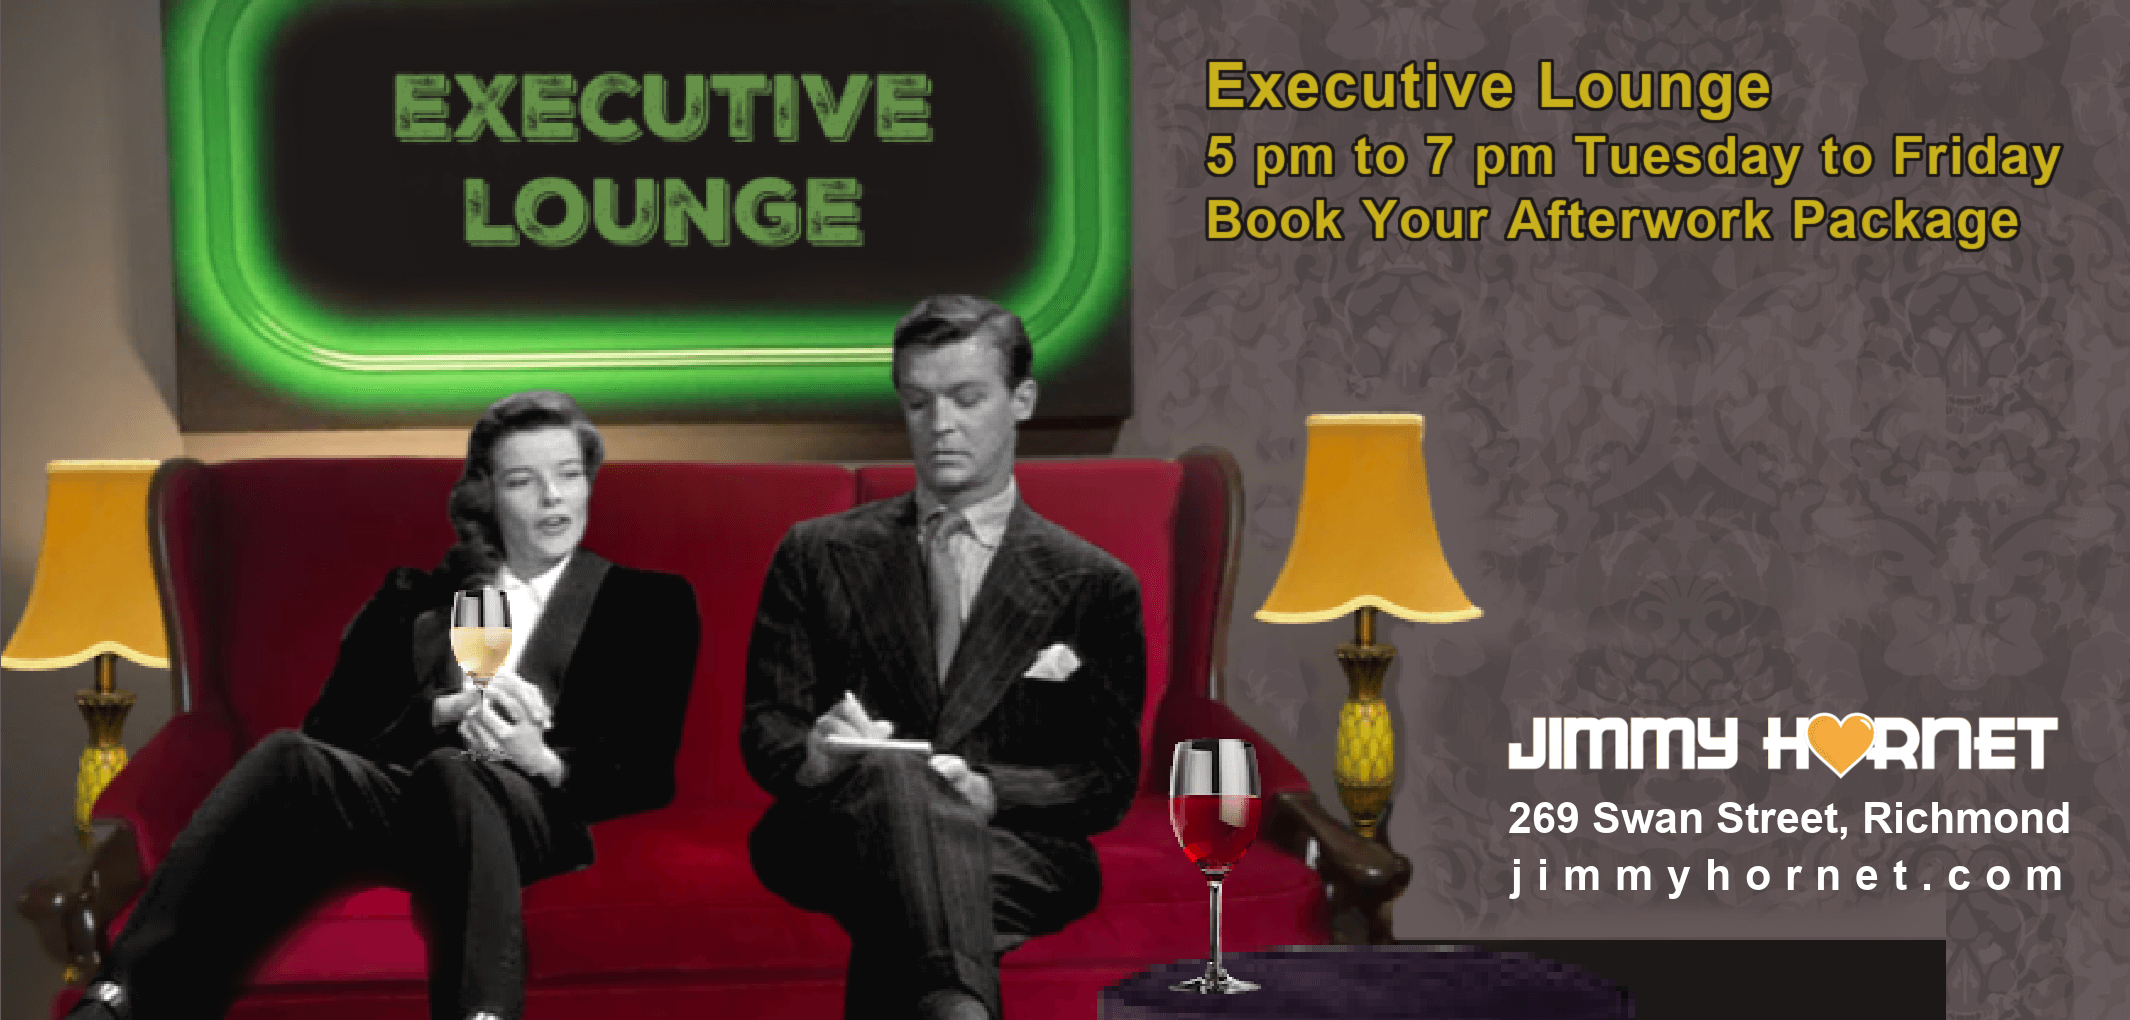 Executive Lounge at Jimmy Hornet